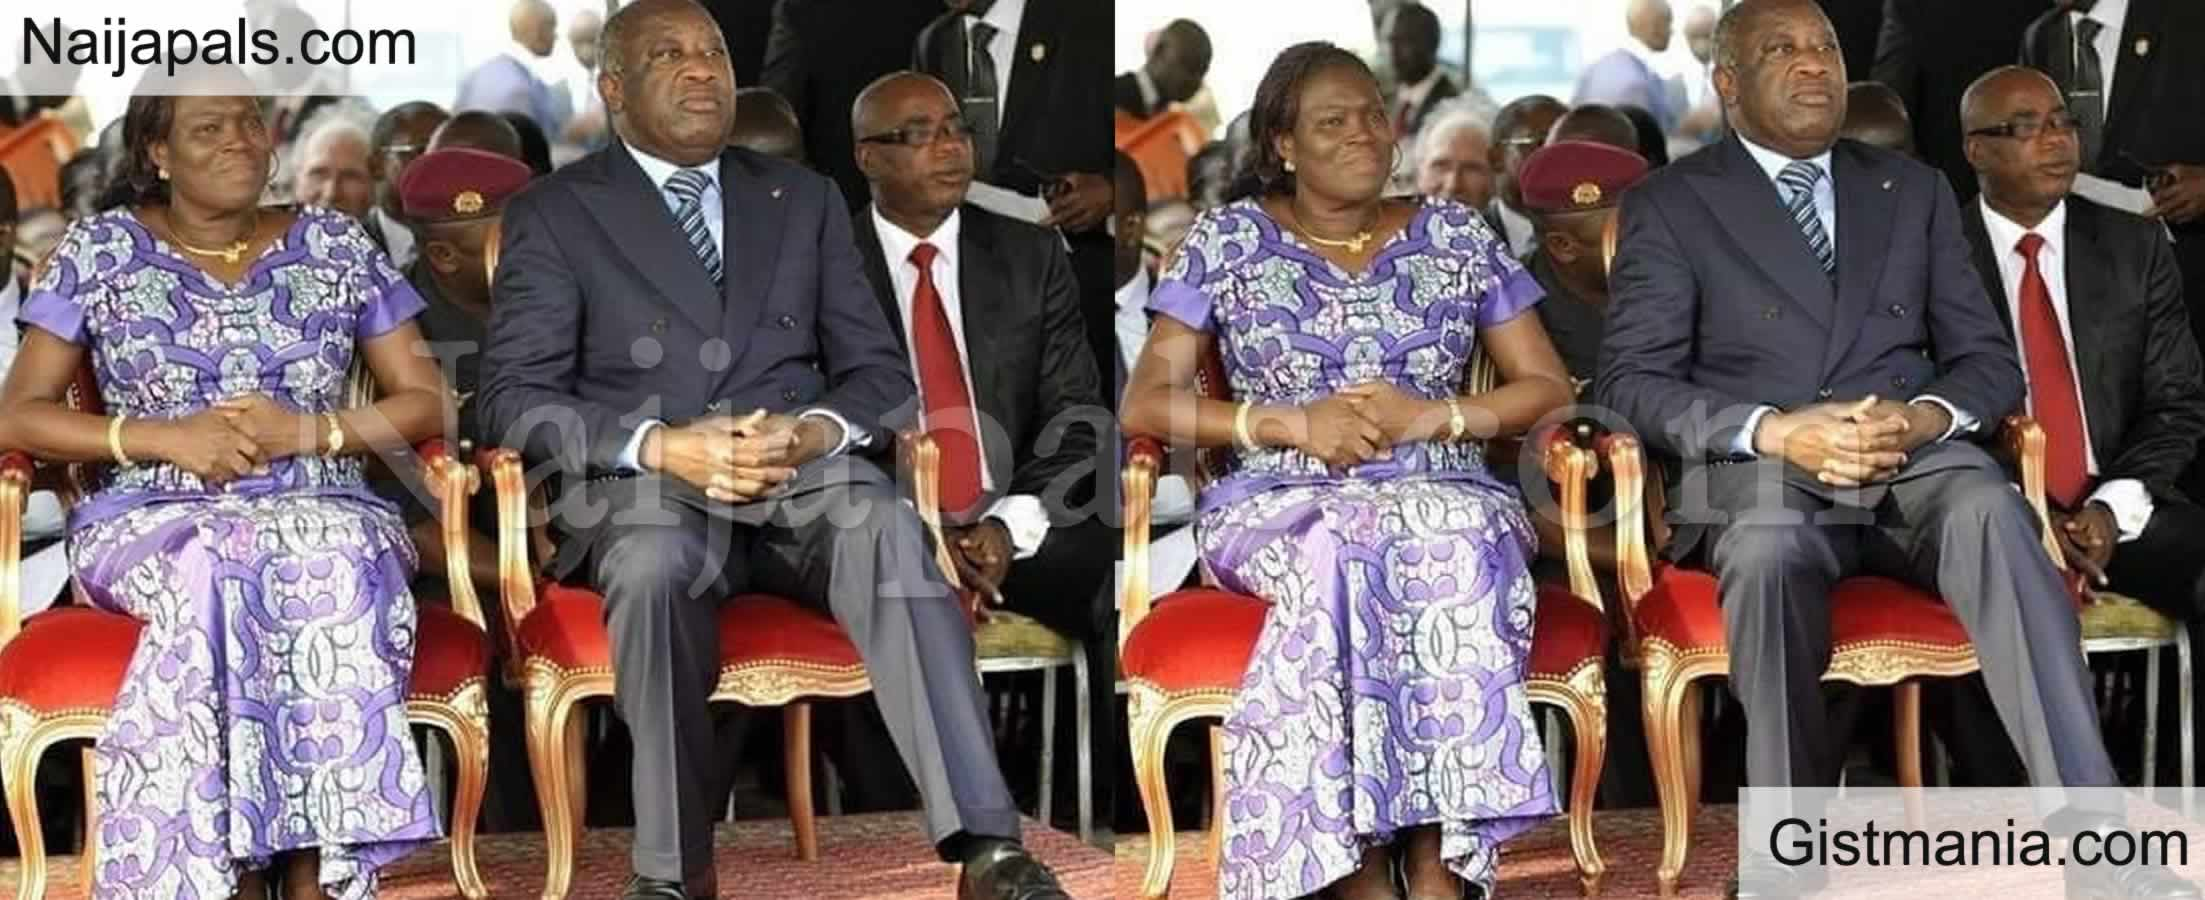 <img alt='.' class='lazyload' data-src='https://img.gistmania.com/emot/broken_heart.gif' /> <b>Former Cote D'Ivoire President, Laurent Gbagbo, 76, Sets To End 30-Year Marriage With Wife</b>